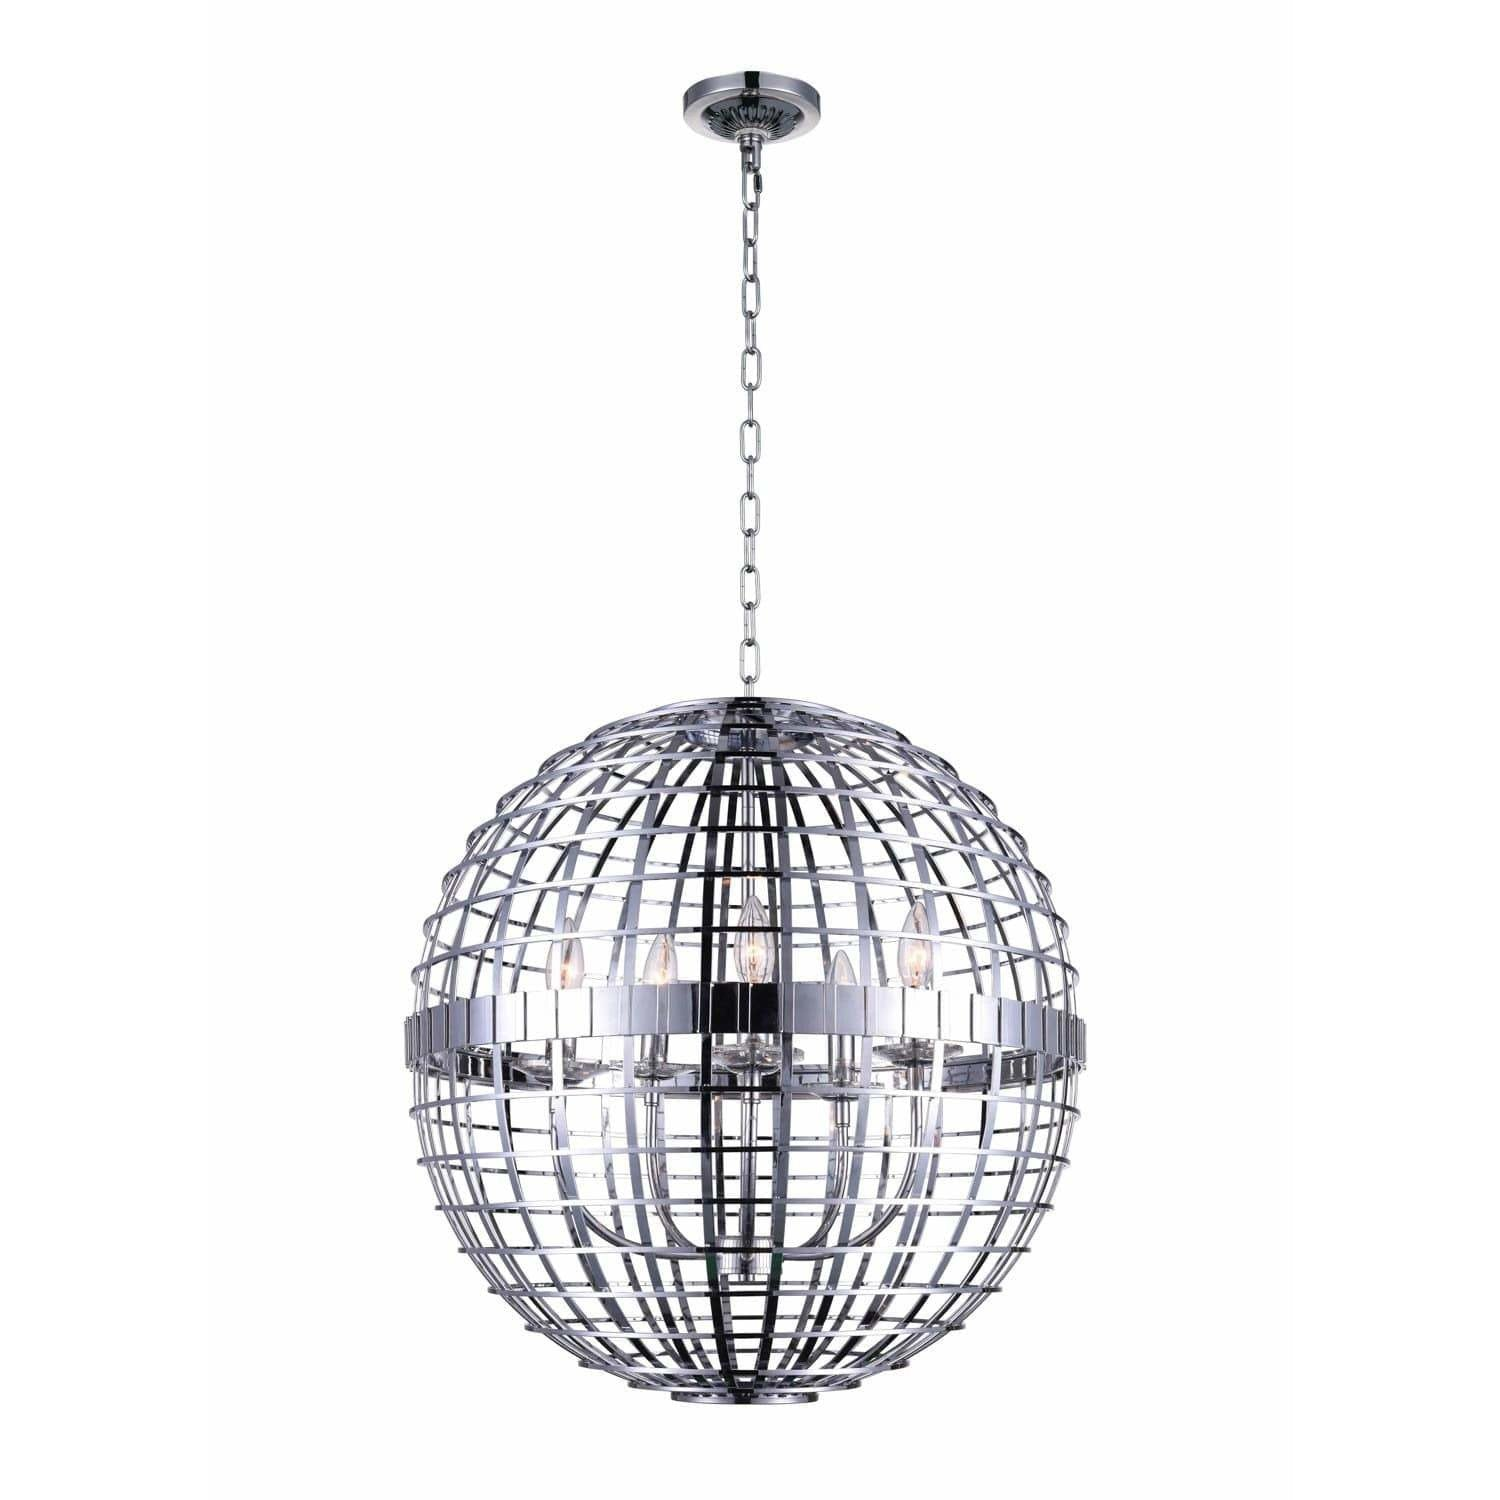 CWI Lighting Chandeliers Chrome Niya 5 Light Chandelier with Chrome finish by CWI Lighting 9974P22-5-601